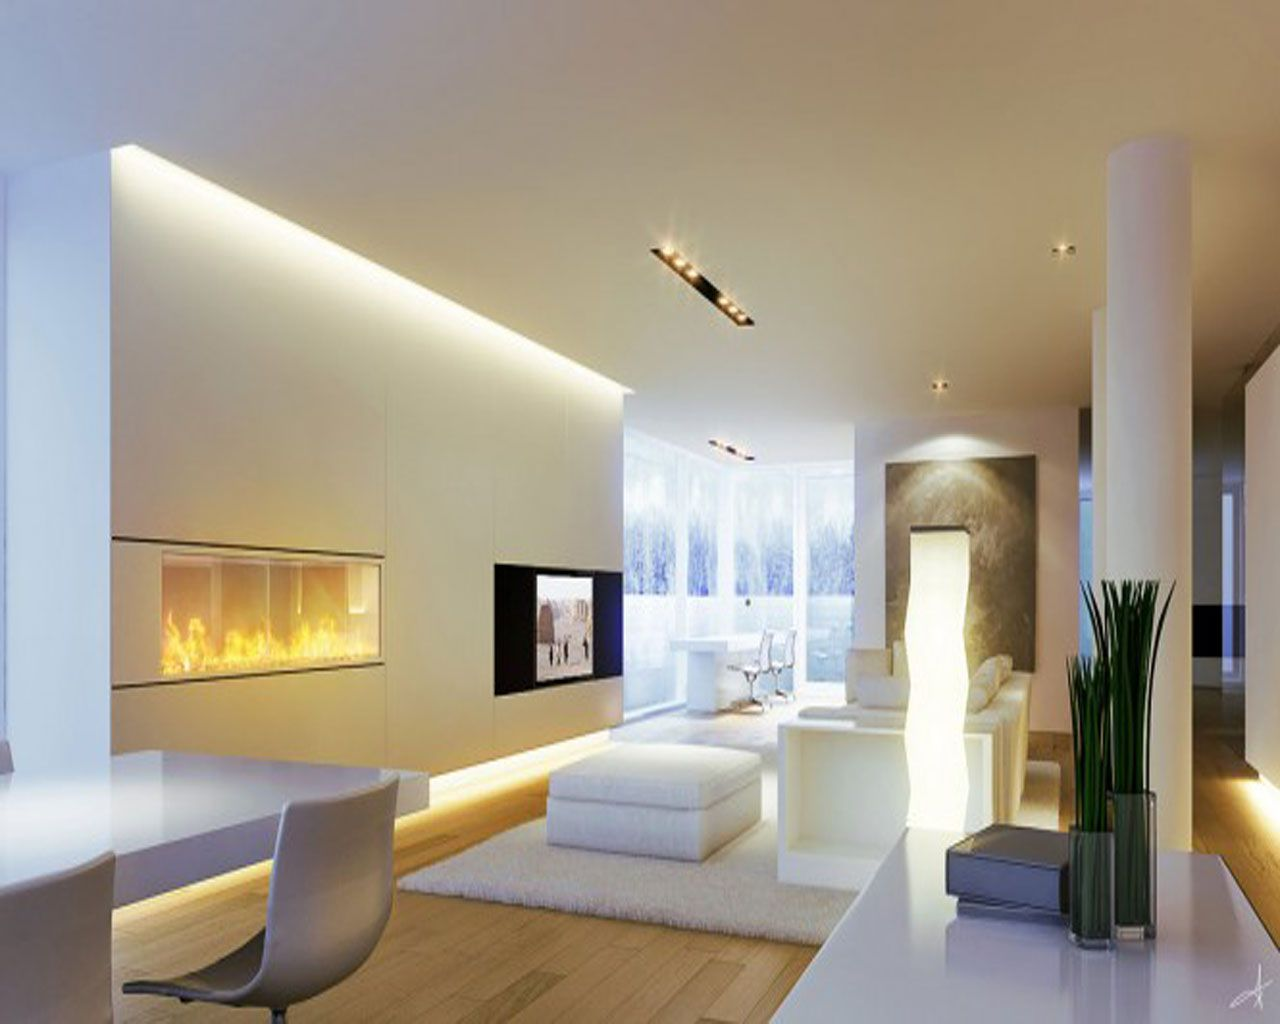 Extraordinary living room lighting design ideas inspiring living room lighting ideas living - Interior lighting tips ...